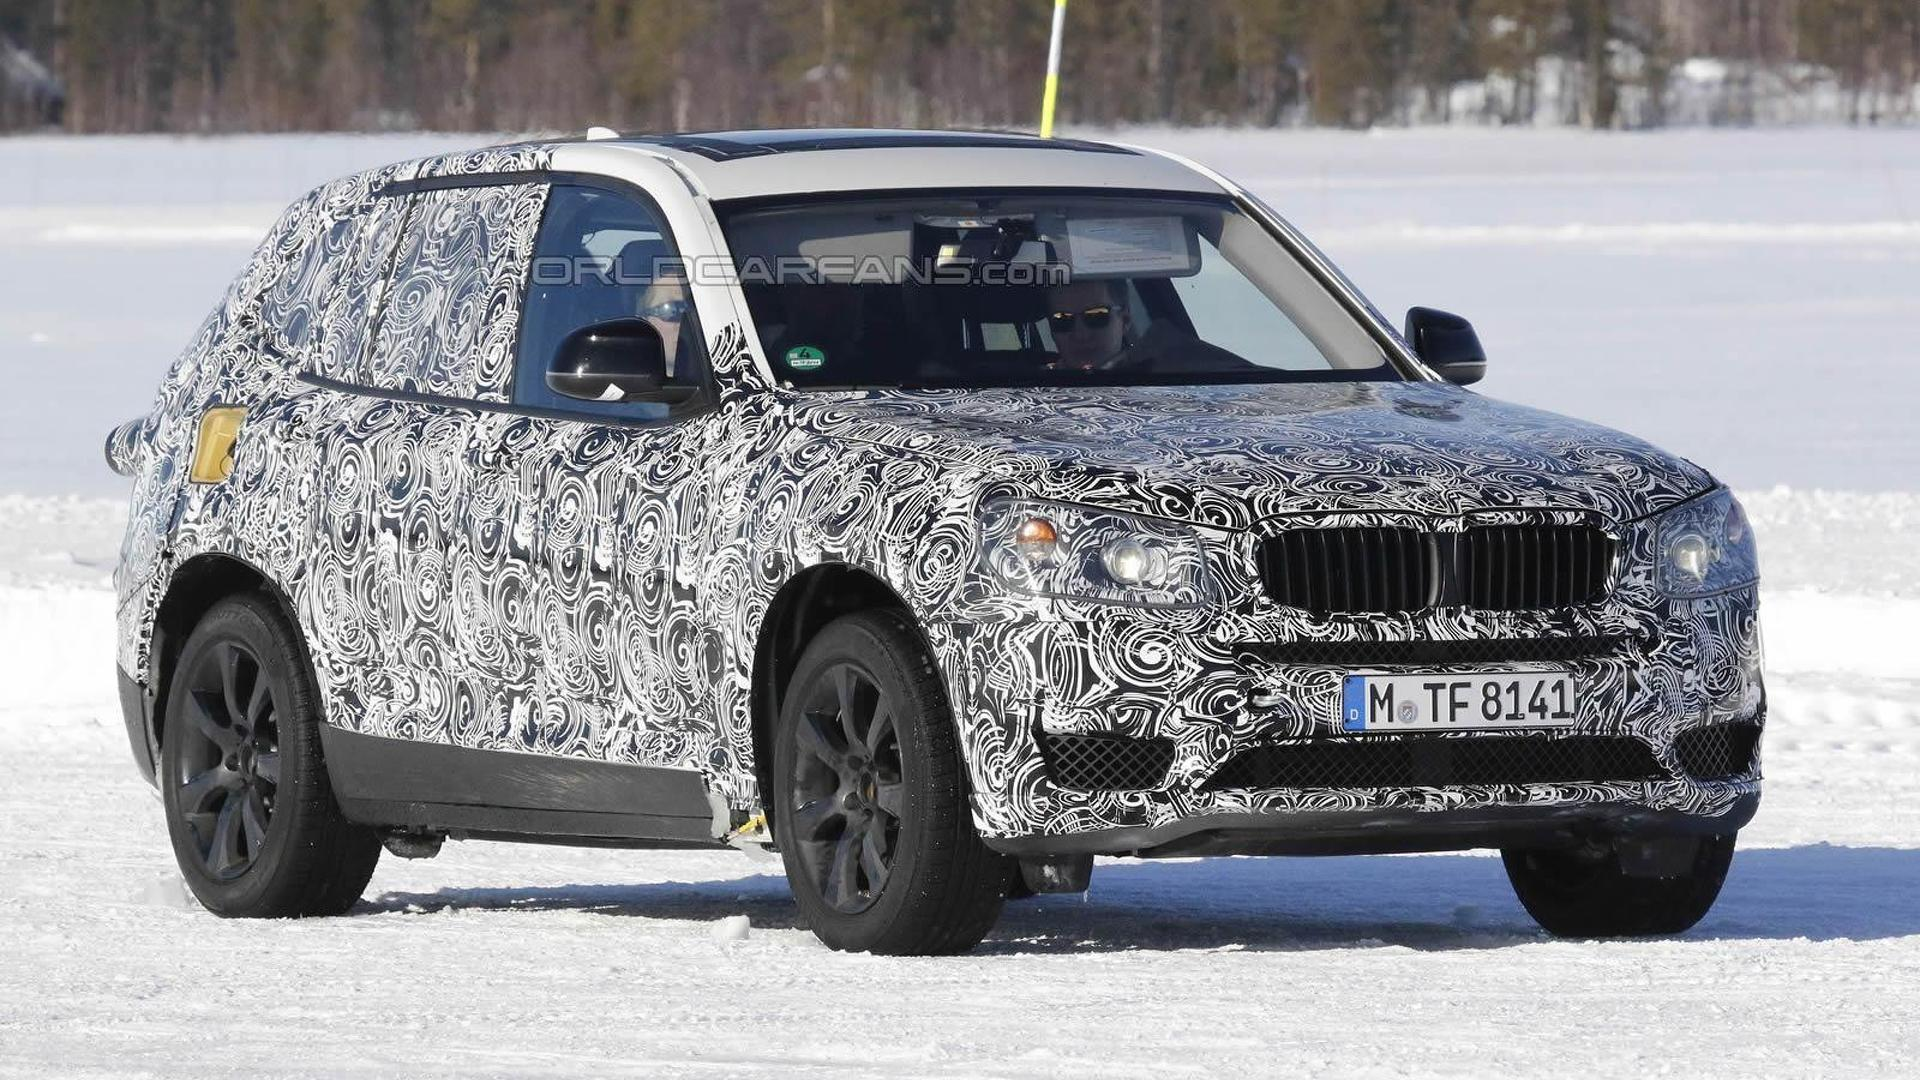 2017 Bmw X3 Rumored To Spawn Fully Fledged X3 M Version With M3 M4